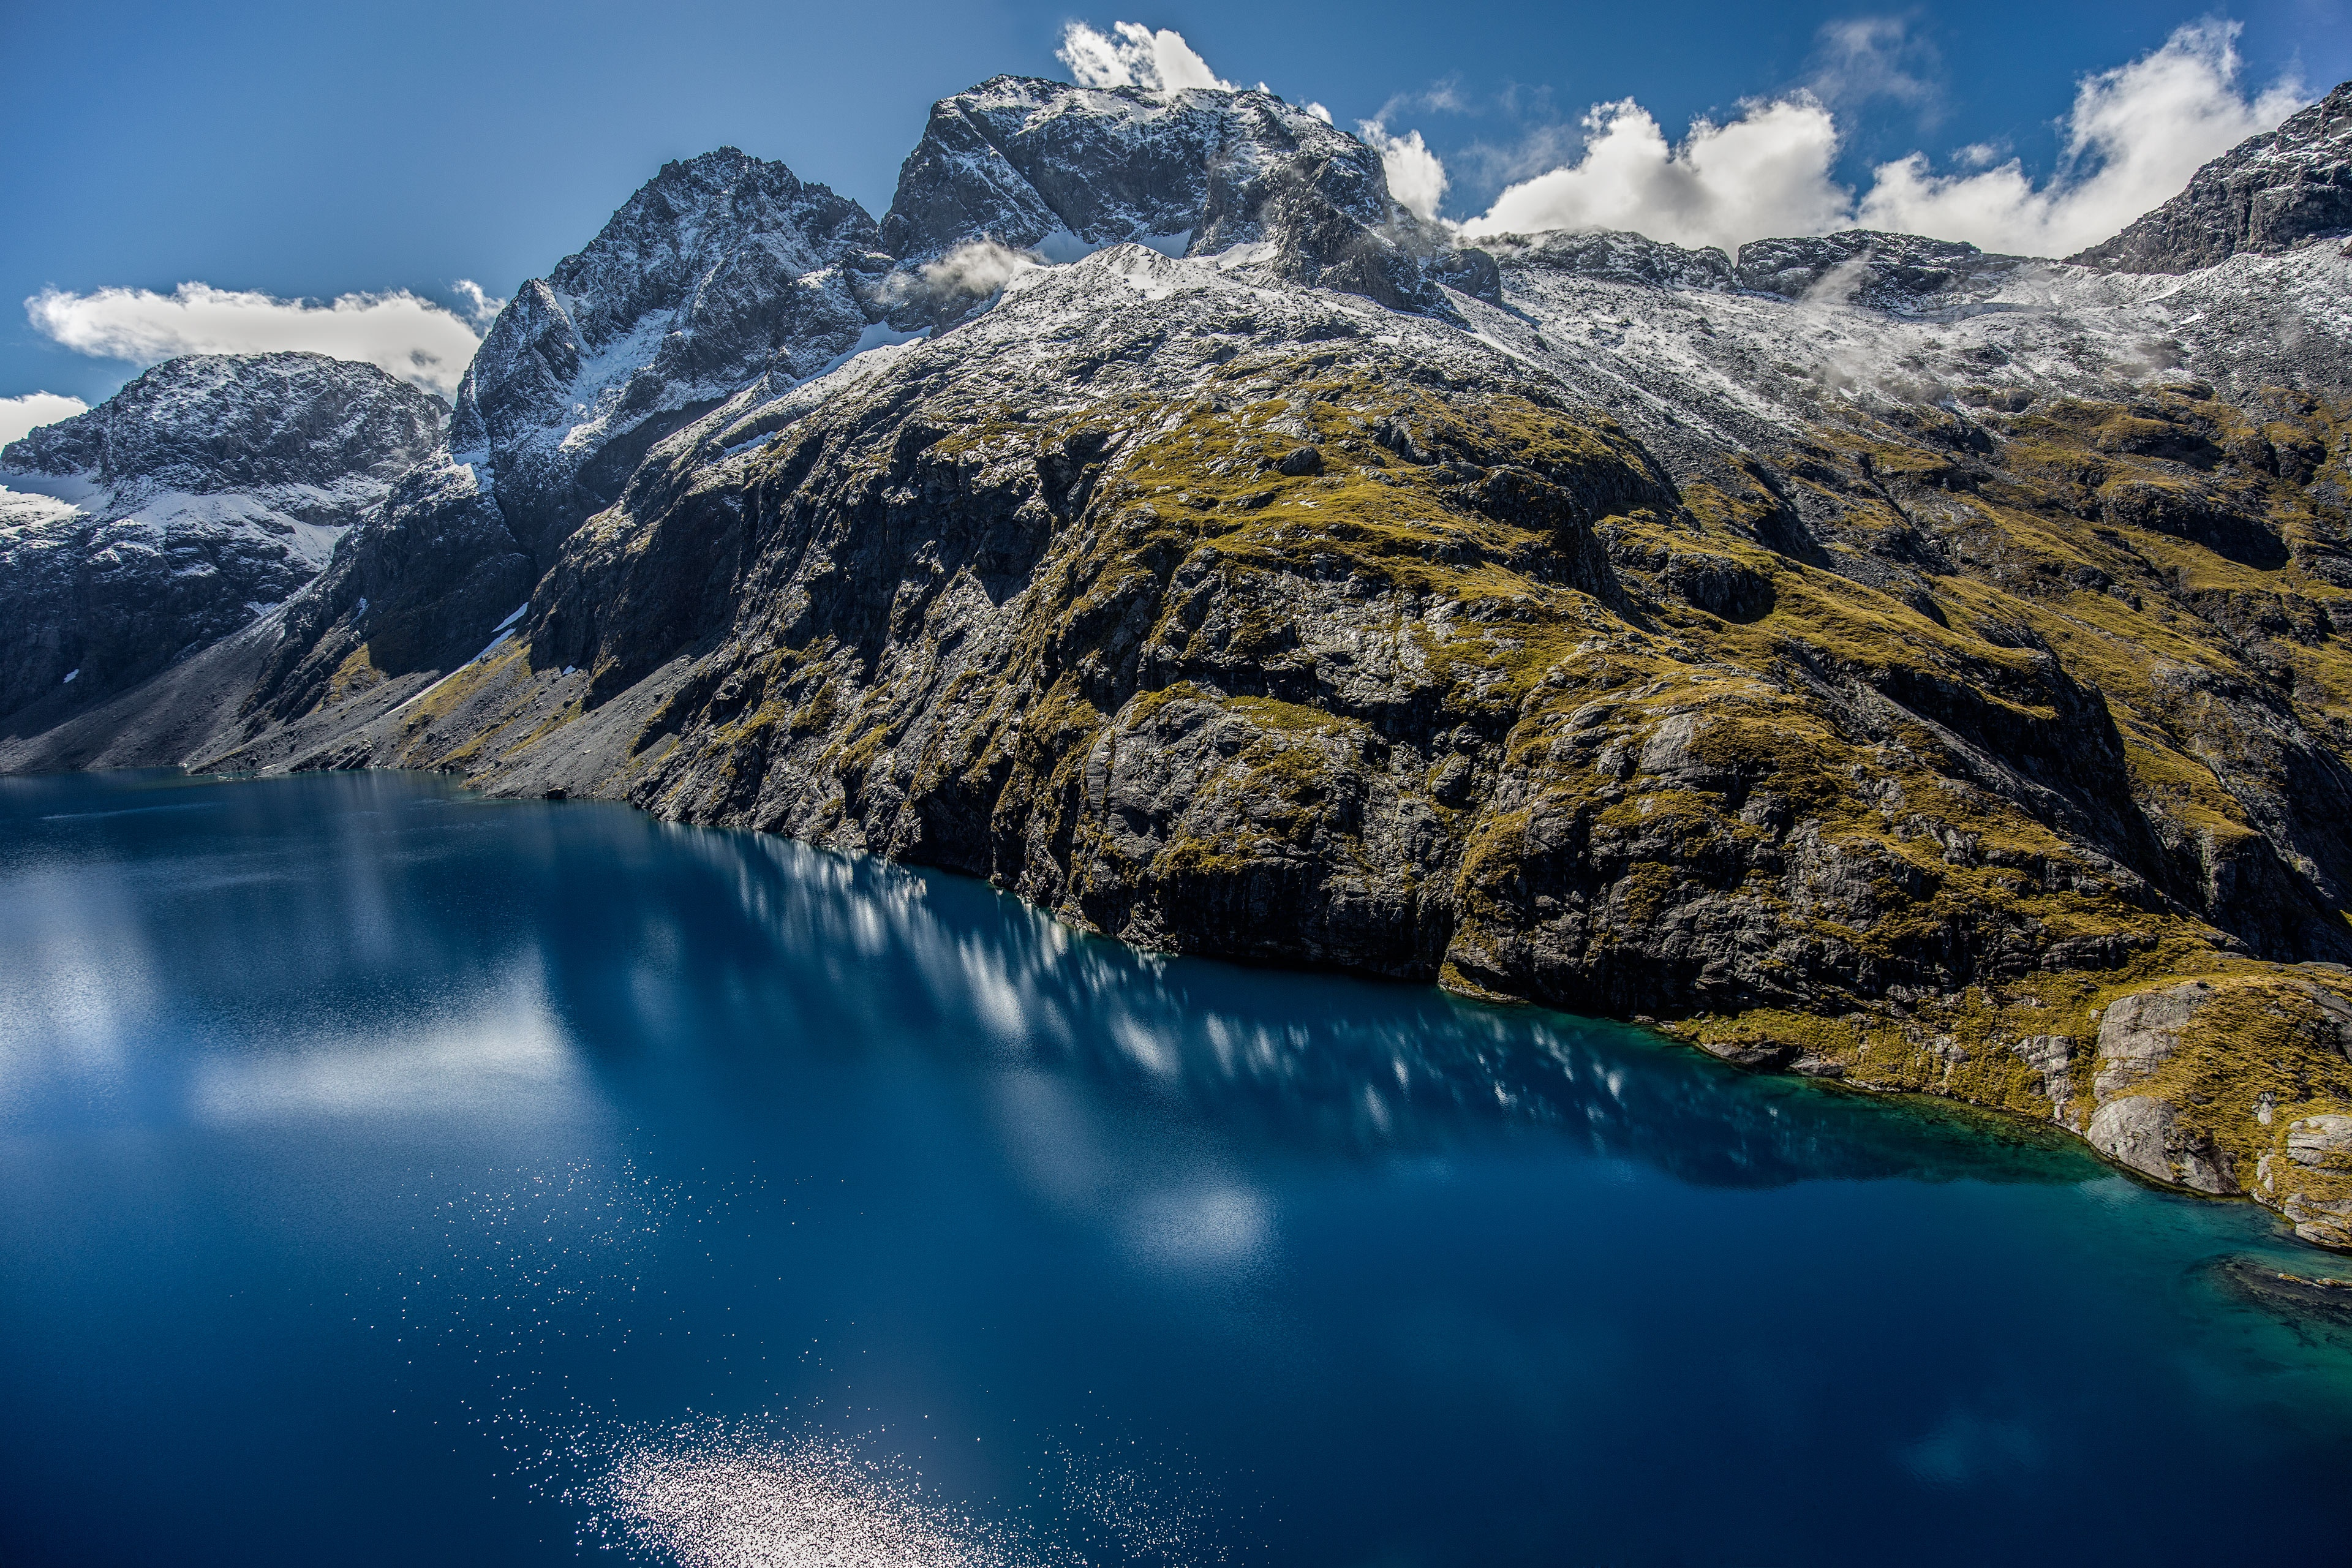 General 3840x2560 mountains rock reflection Fiordland National Park New Zealand river clouds nature landscape